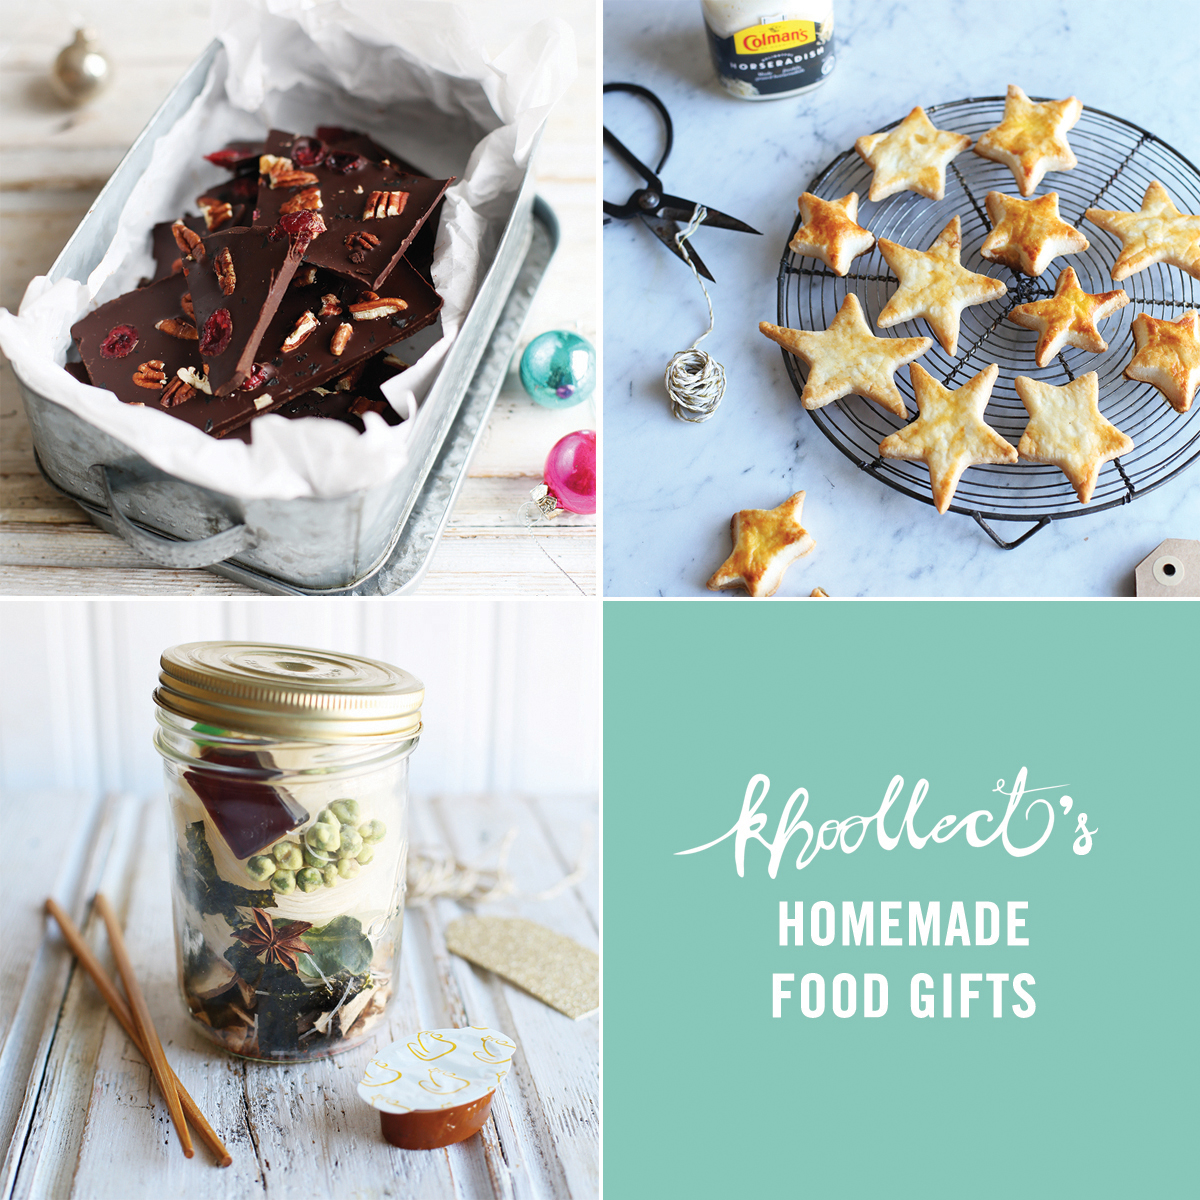 khoollect tips creating thoughtful homemade food gifts